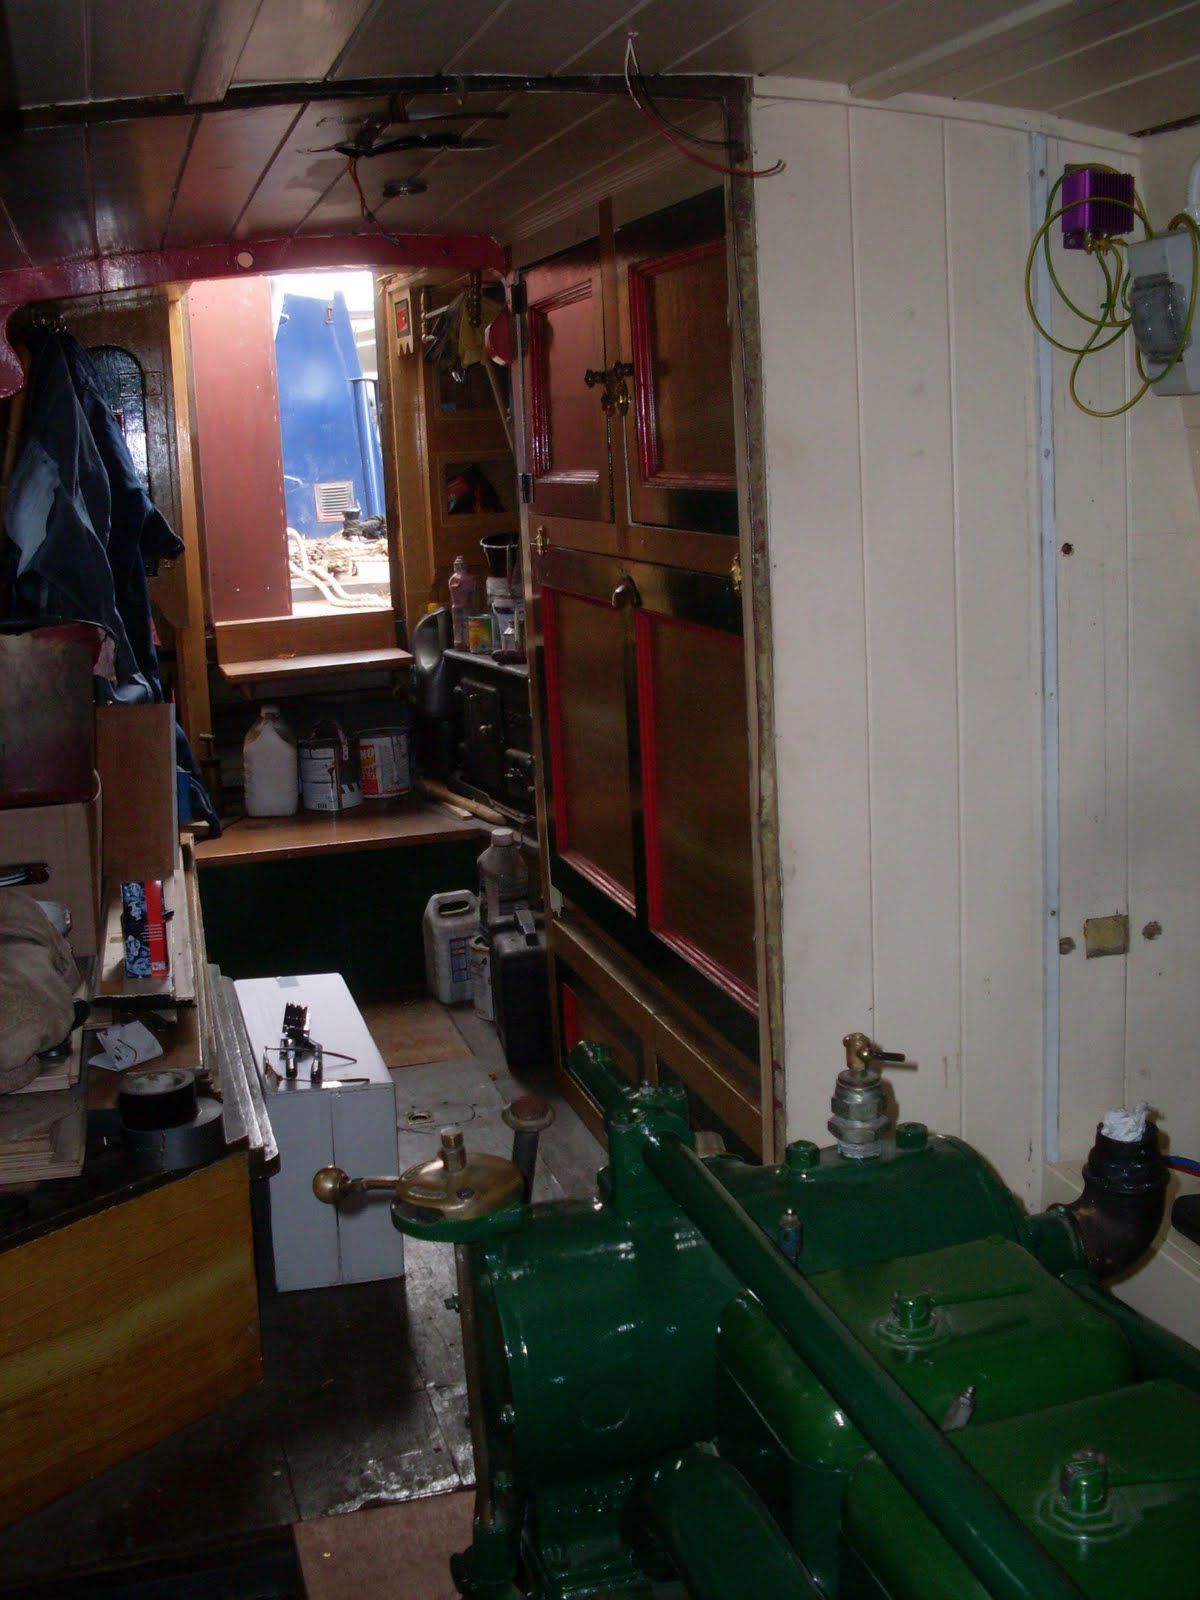 Spaceship Engine Room: Narrowboat Star: December 2011